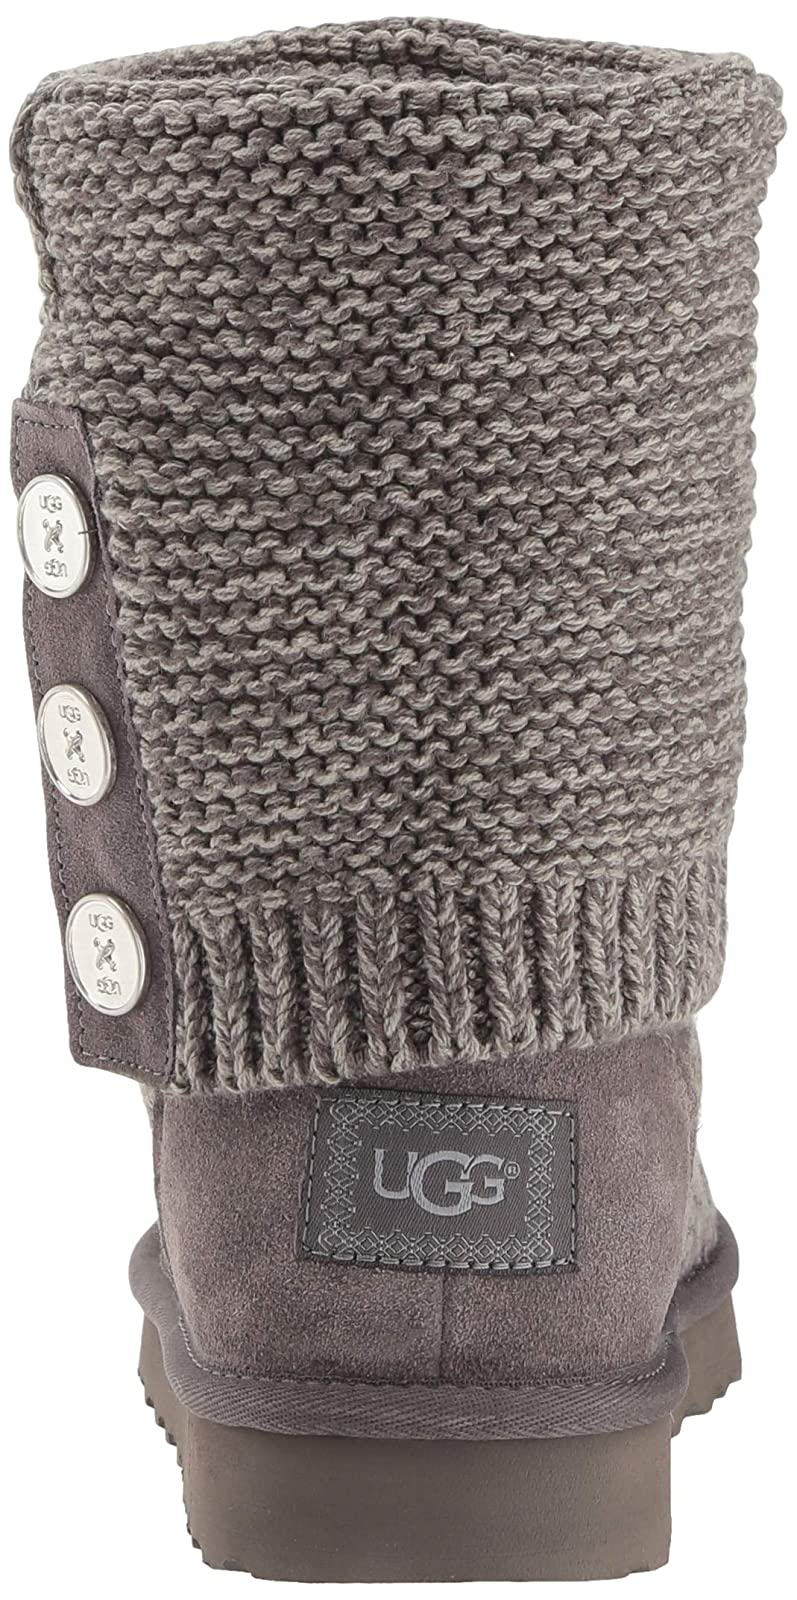 UGG Women's W PURL Cardy Knit Fashion Boot 1094949 - 2